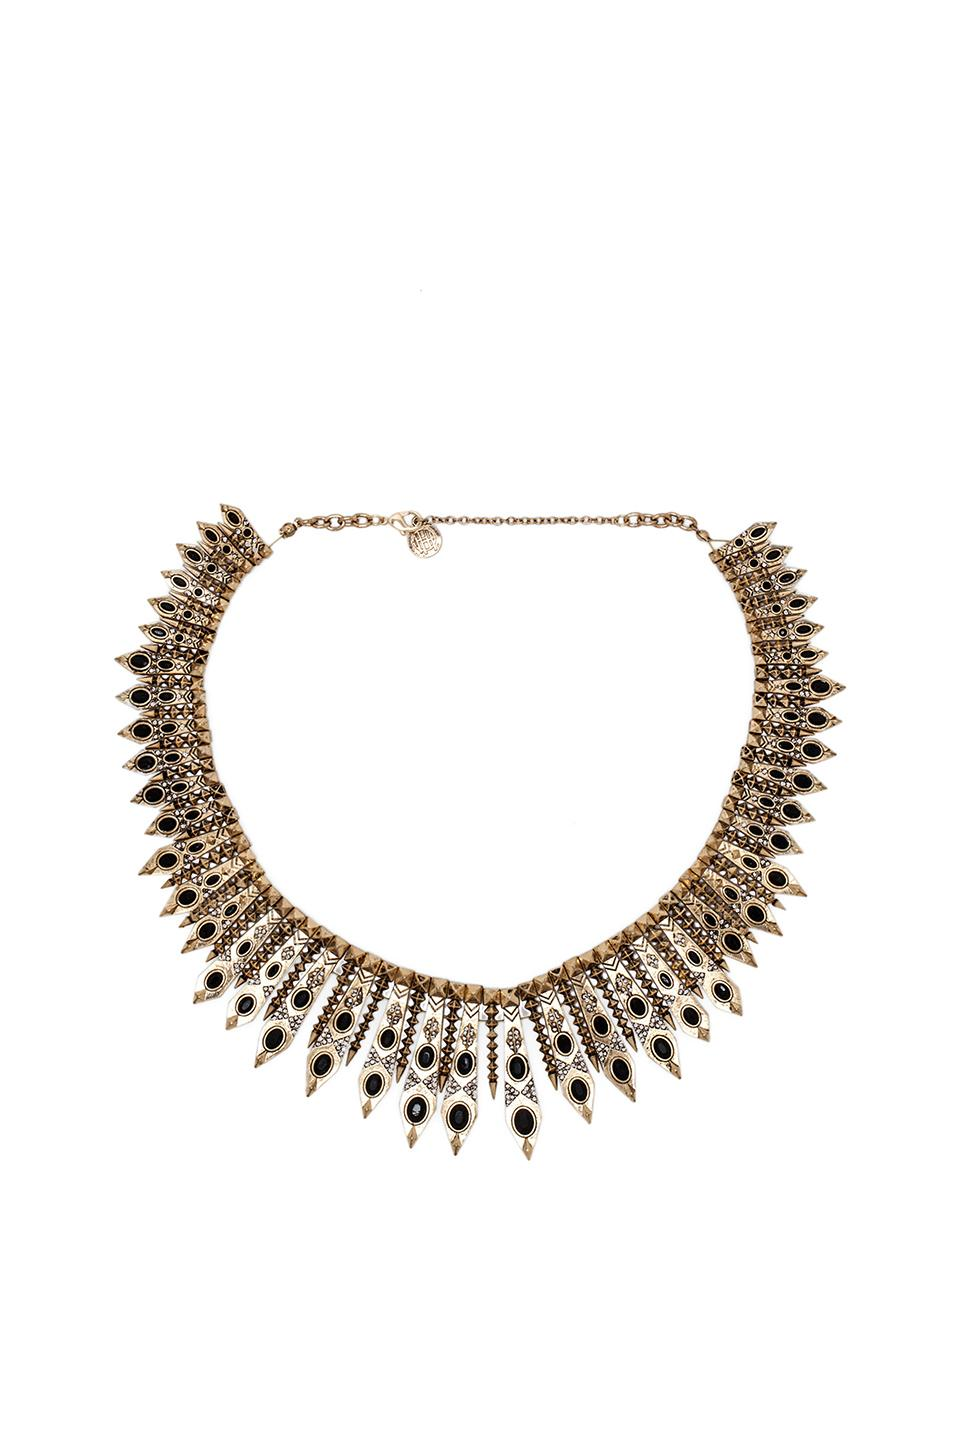 House of Harlow 1960 House of Harlow Gypsy Feather Necklace in Gold & Black